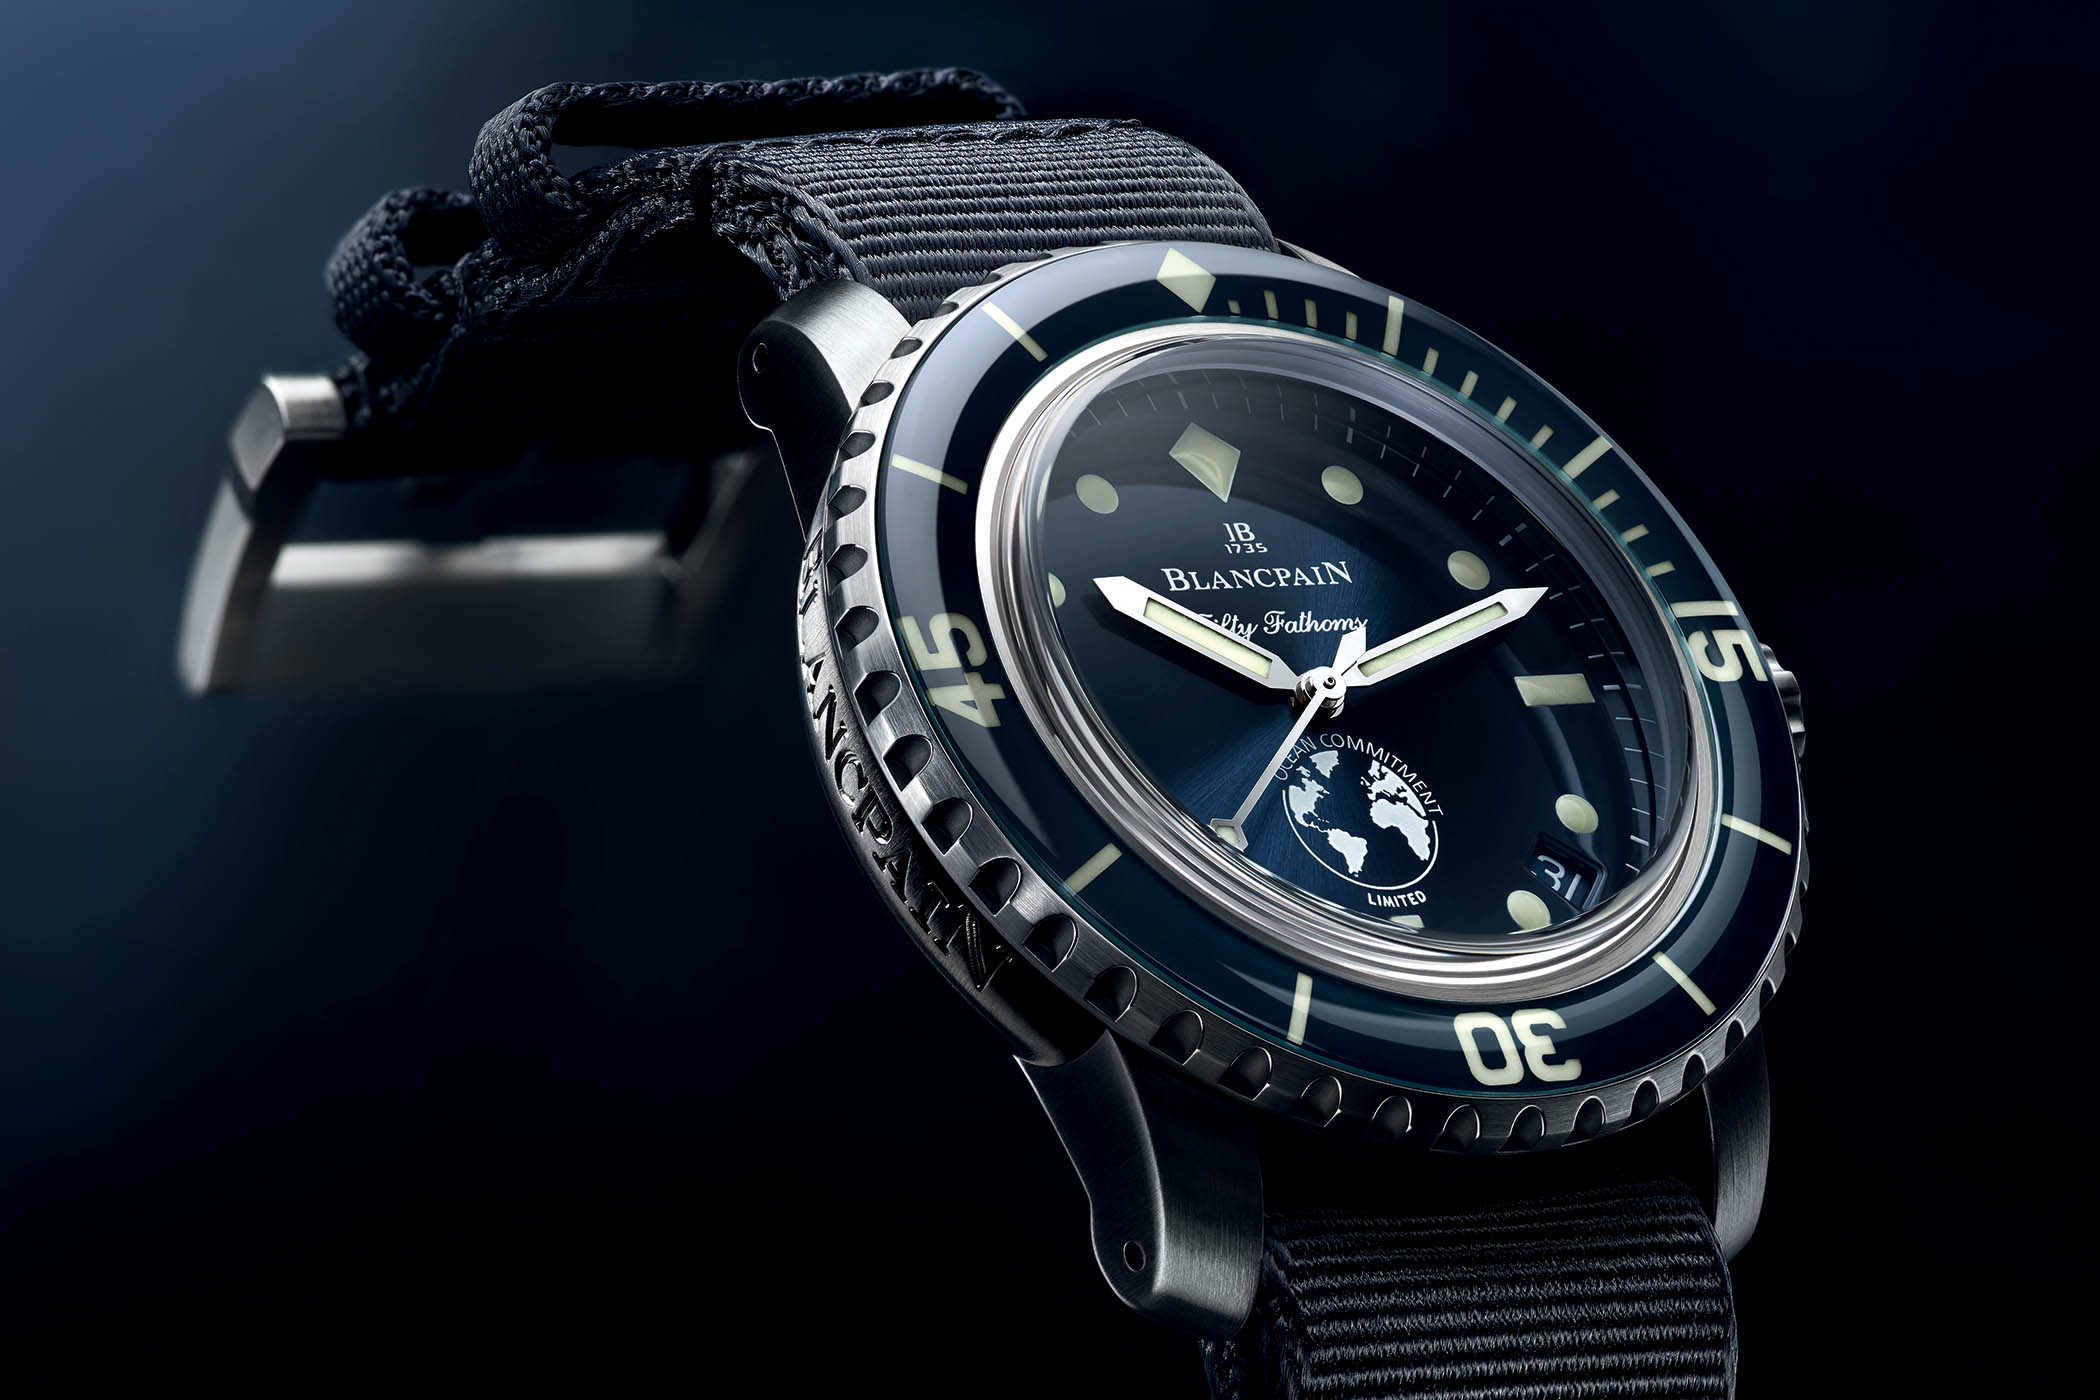 Blancpain Fifty Fathoms Ocean Commitment III Limited Edition - 1